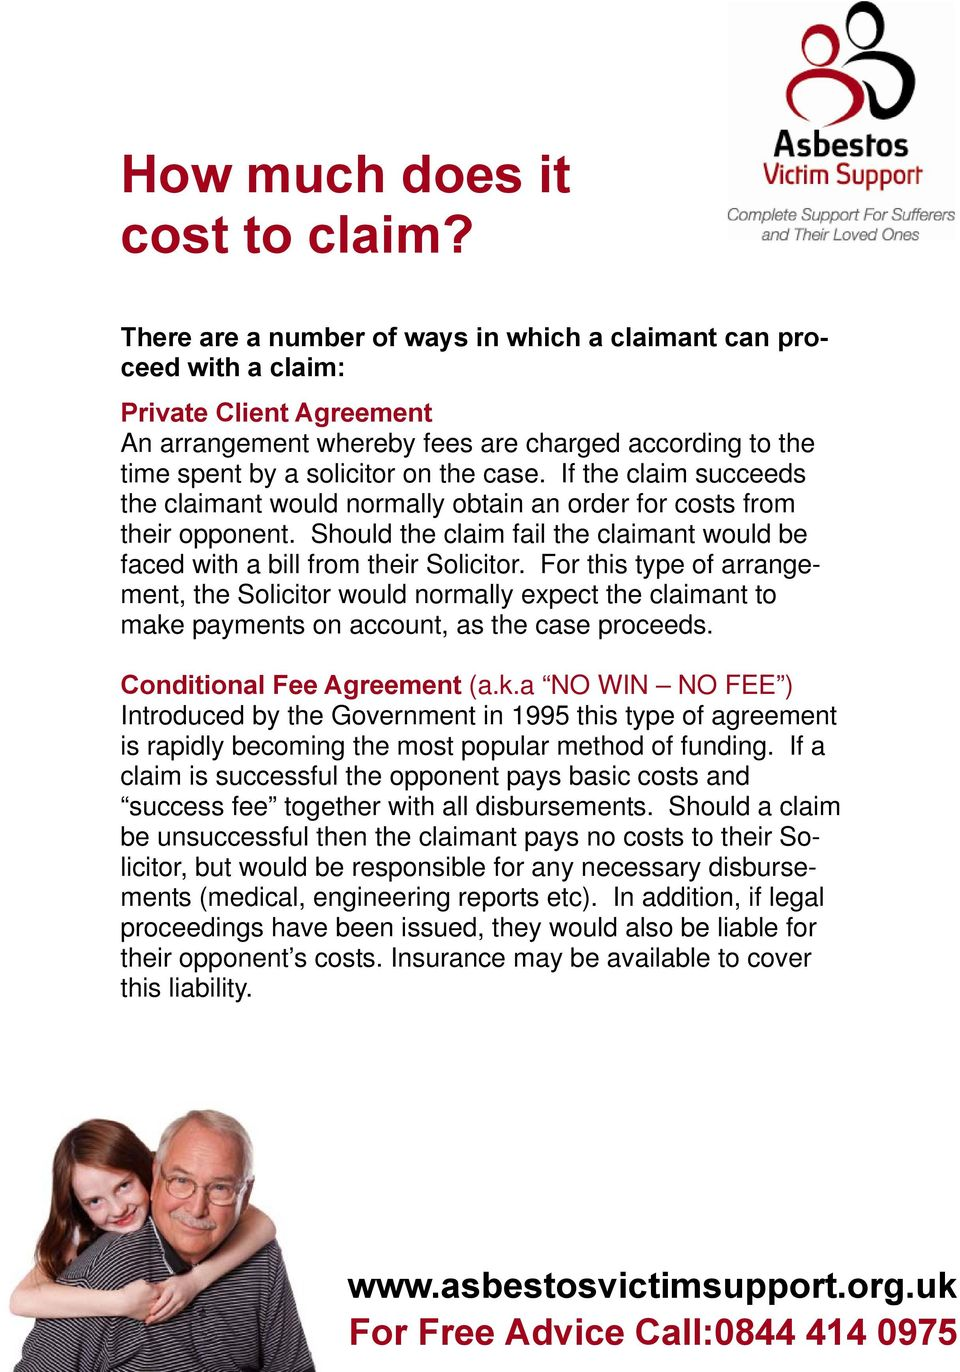 If the claim succeeds the claimant would normally obtain an order for costs from their opponent. Should the claim fail the claimant would be faced with a bill from their Solicitor.